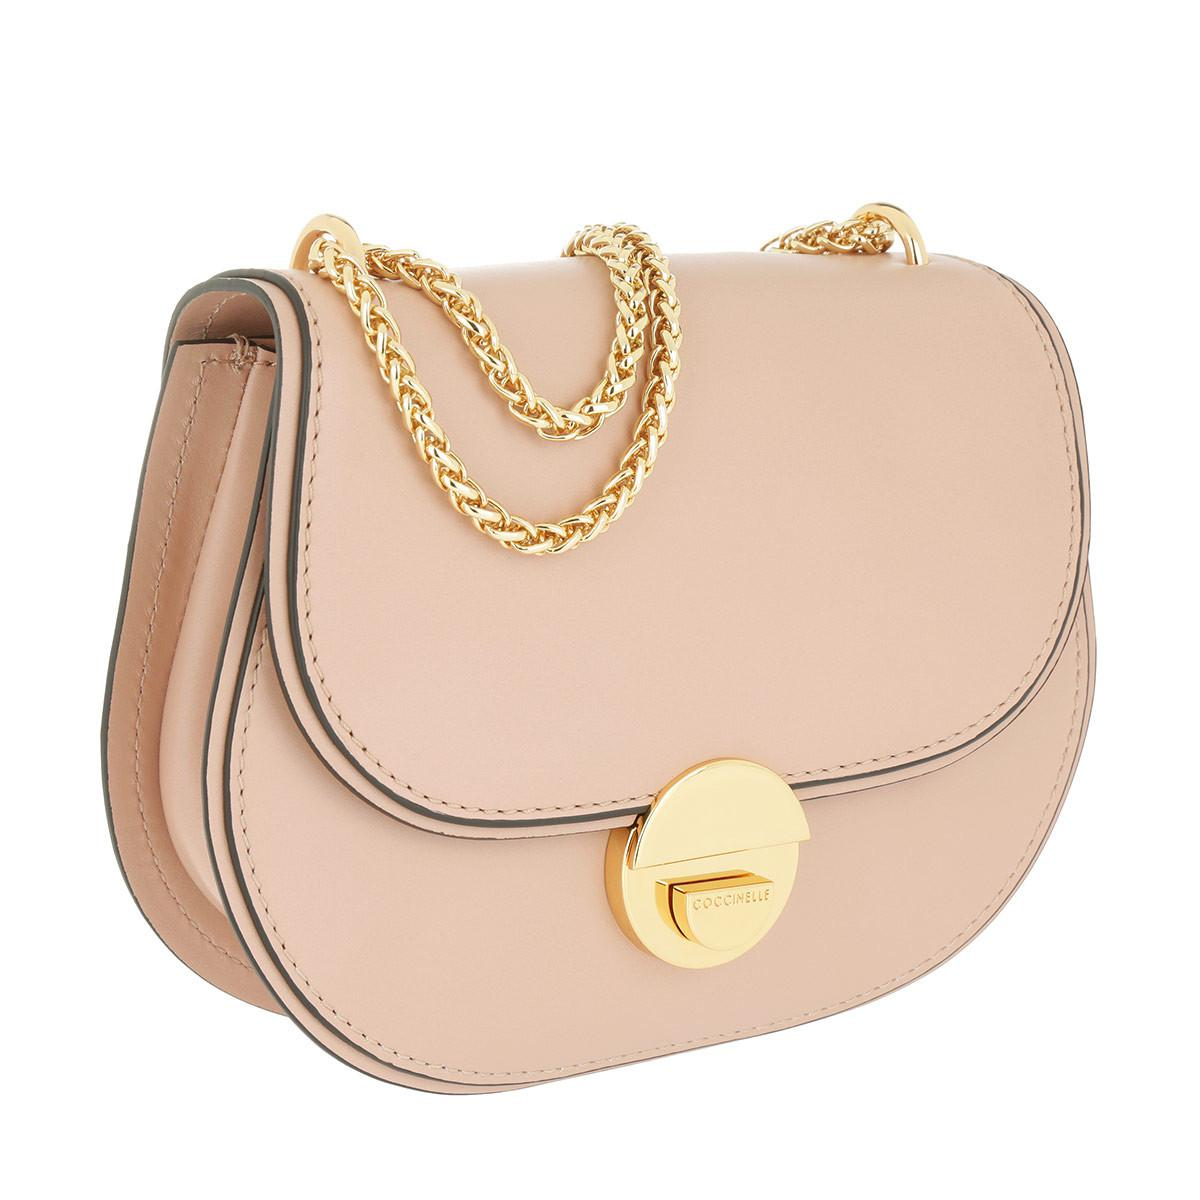 Coccinelle Leather Violaine Chain Crossbody Bag Pivoine in Natural